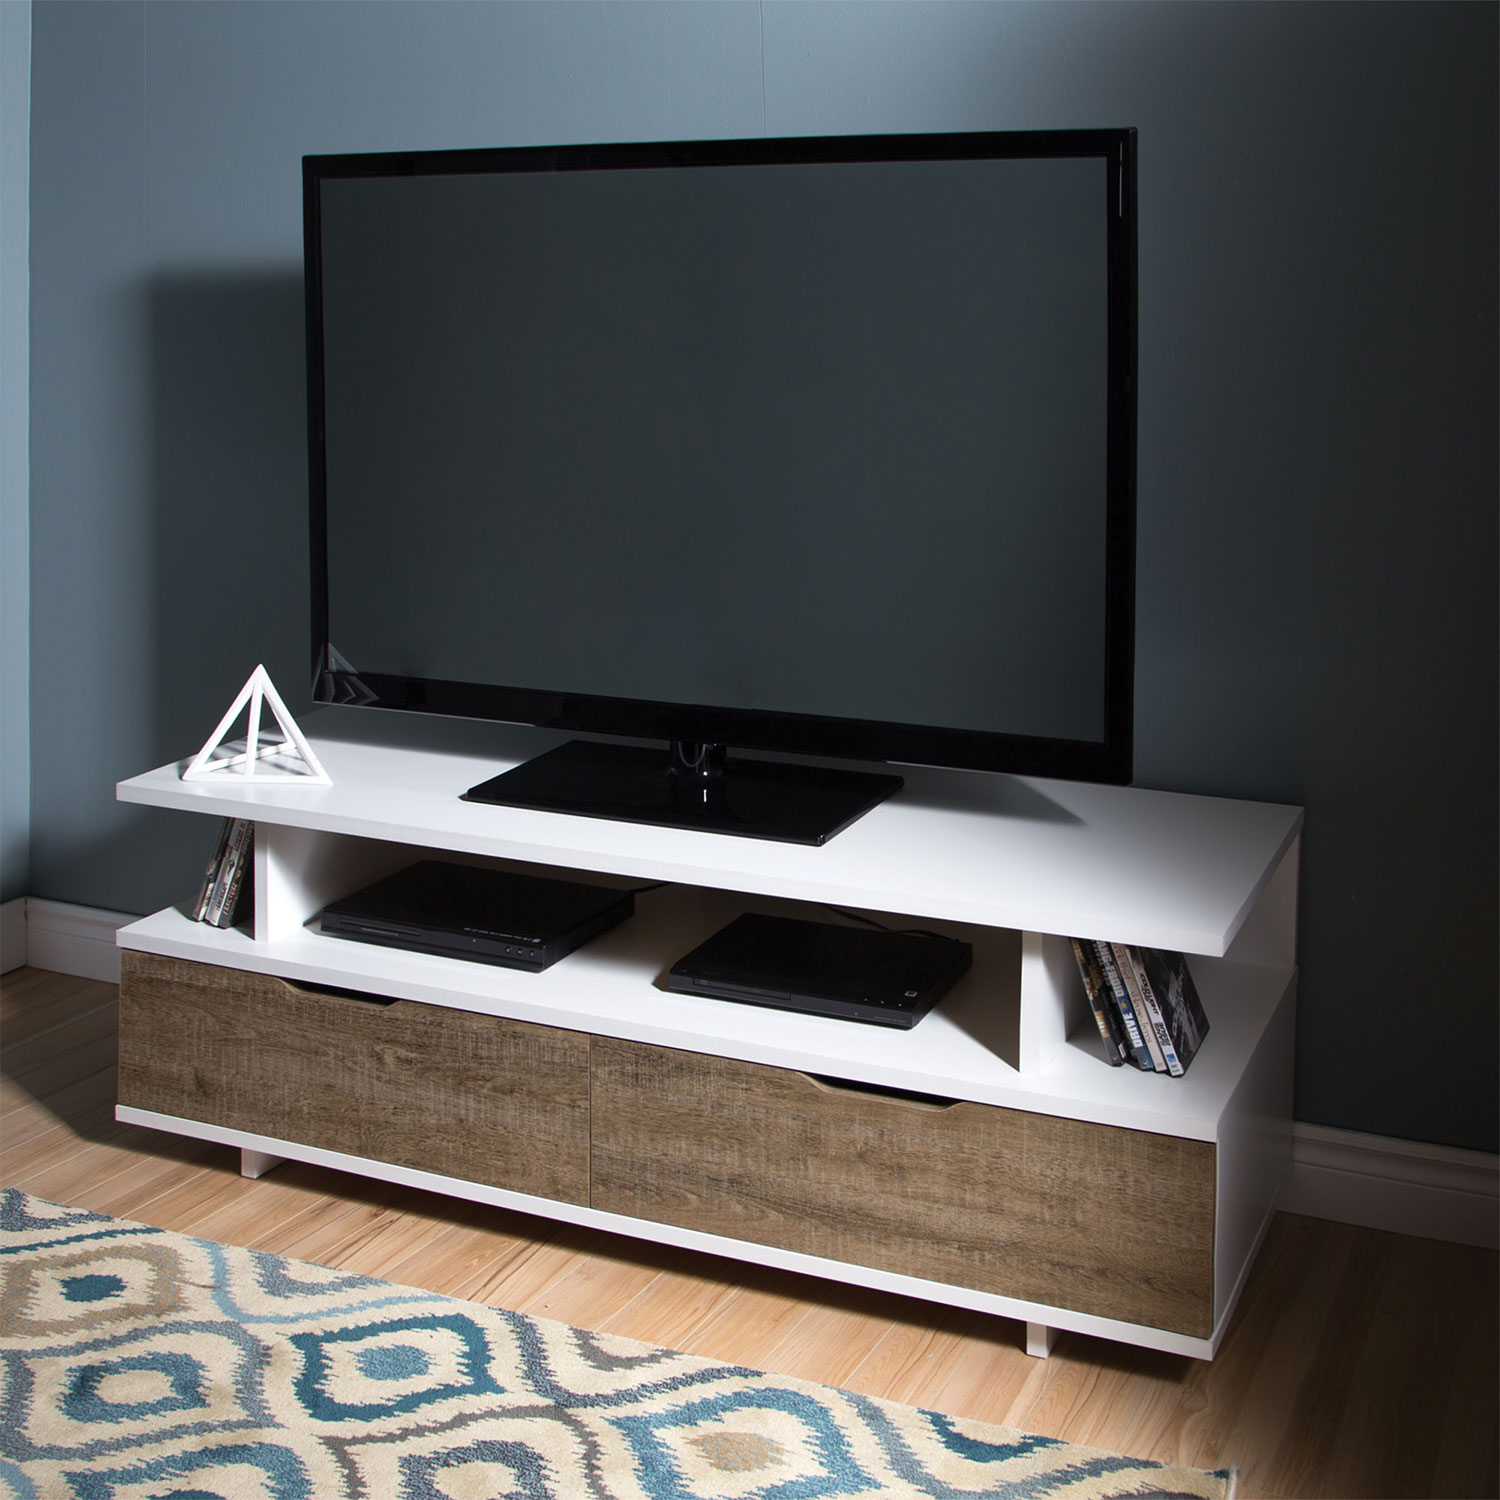 south shore reflekt  tv stand  weathered oakpure white  tv  - south shore reflekt  tv stand  weathered oakpure white  tv stands best buy canada